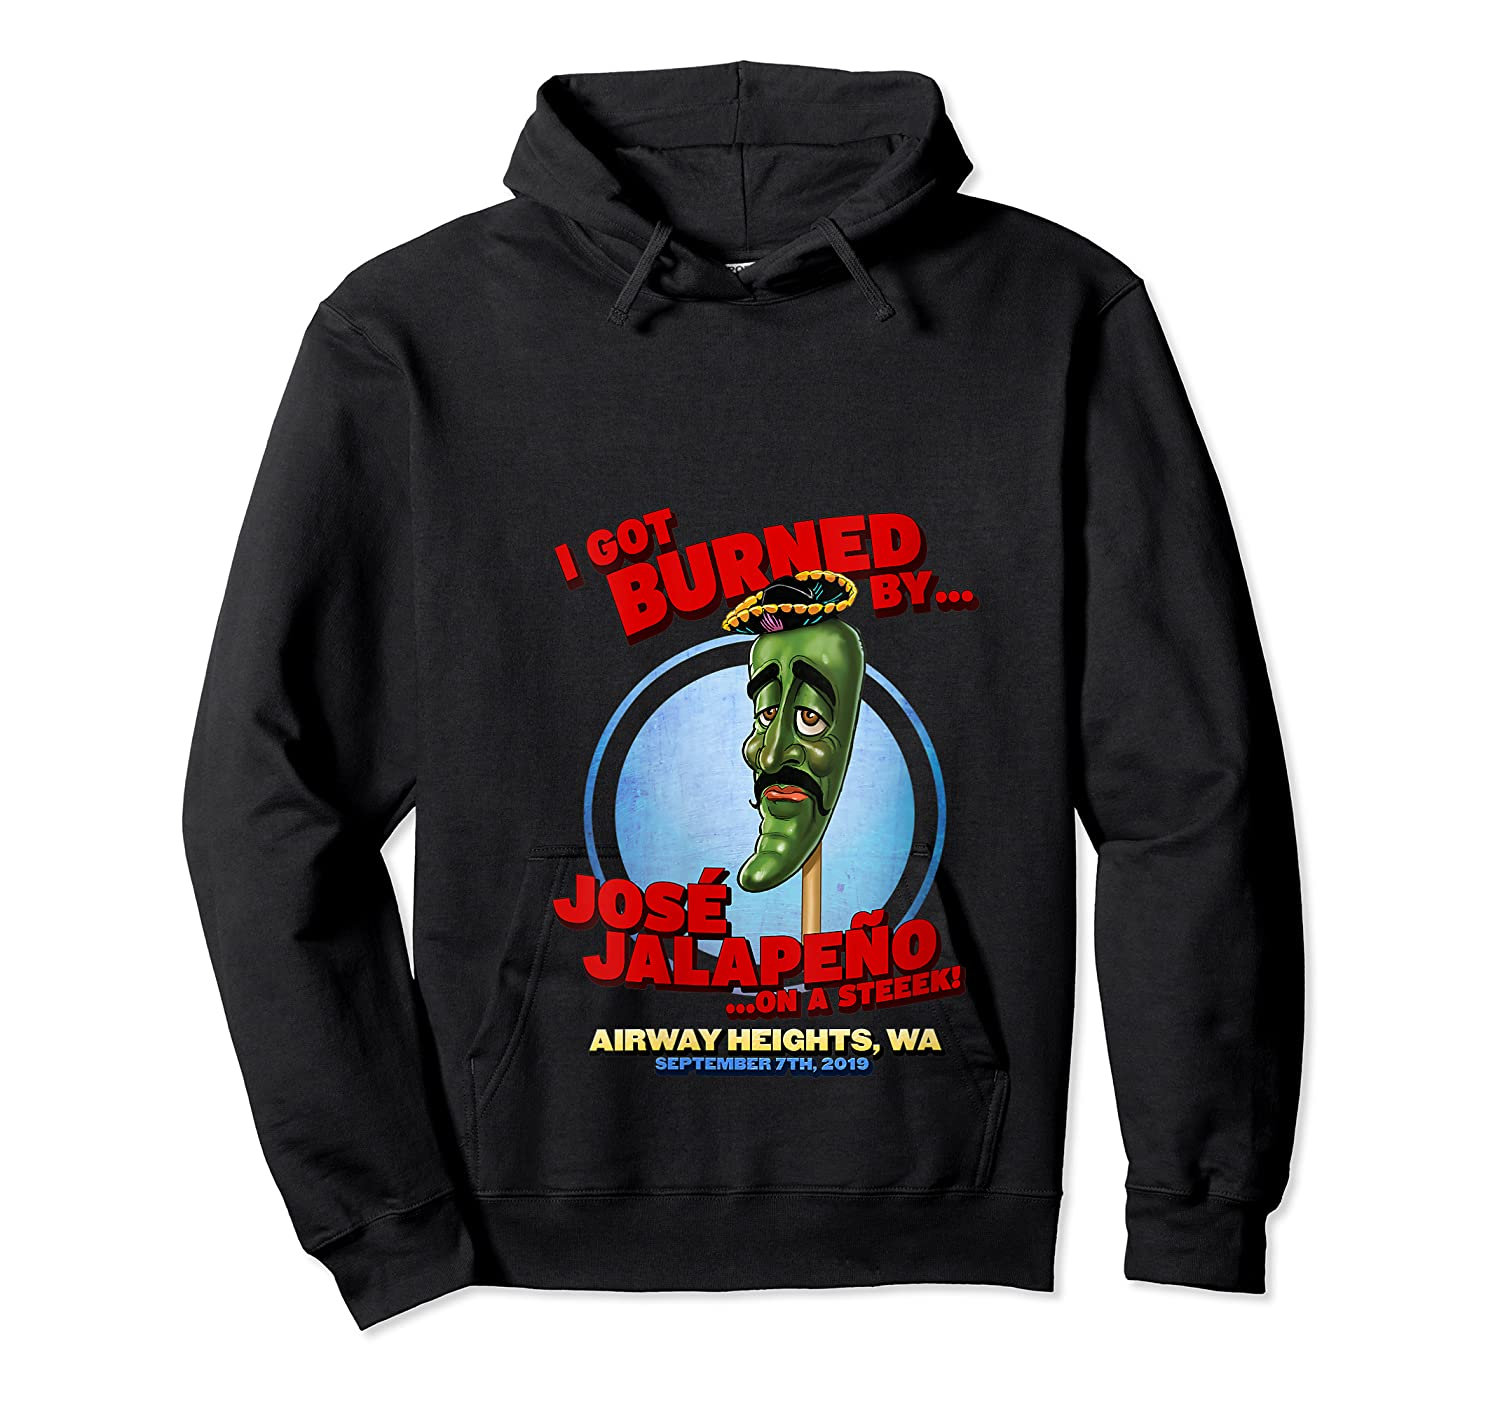 Jose Jalapeno On A Stick Airway Heights Wa T Shirt Unisex Pullover Hoodie